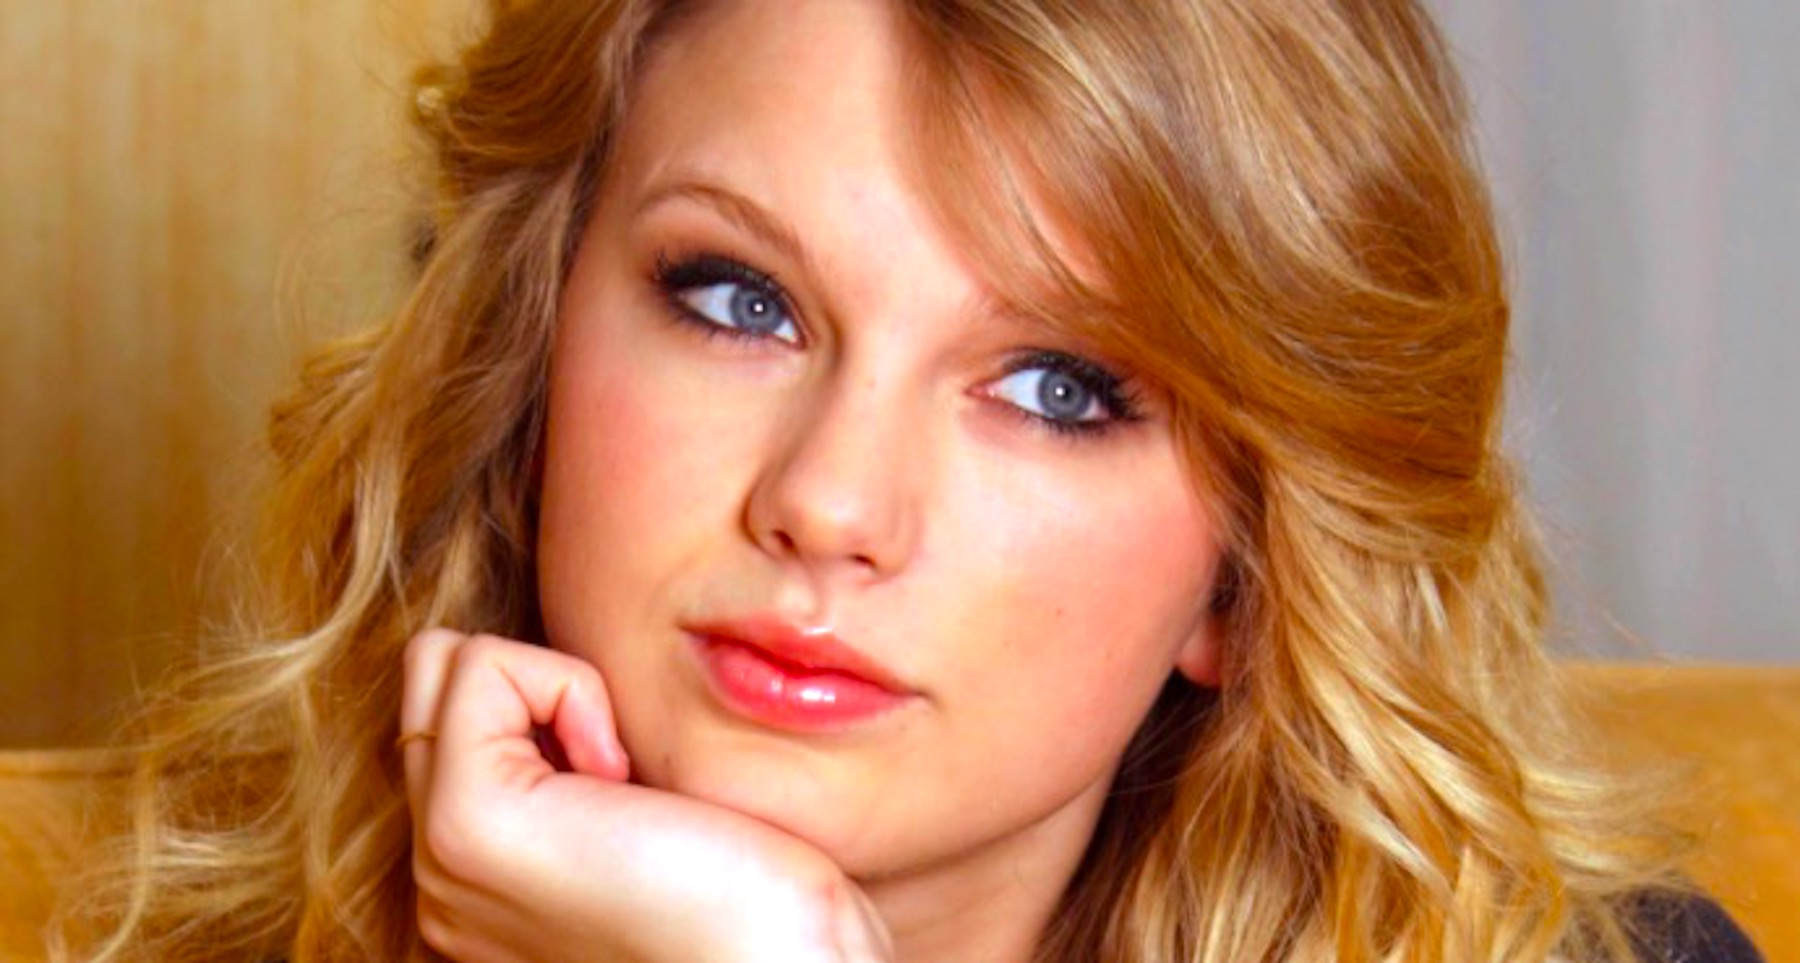 Taylor Swift, country, taylor, blond, girl, think, thinking, smart, celebs, Music, South, Southern, bad, good, iq, confused